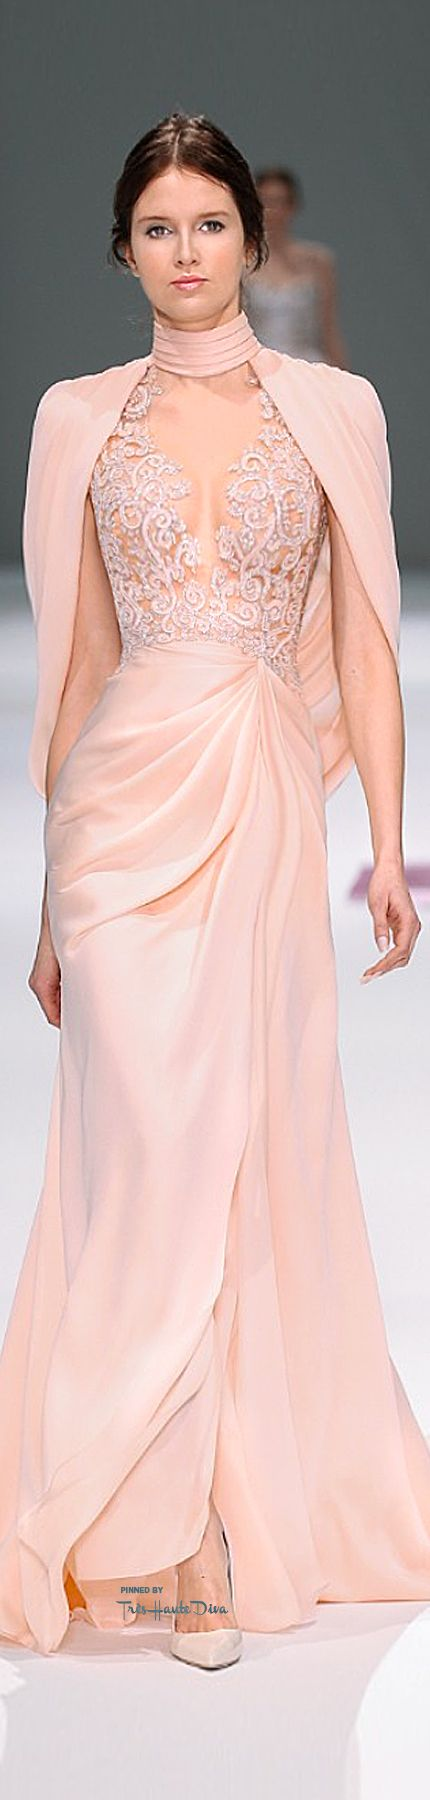 TD ❤️ Ralph & Russo Spring 2015 Couture jaglady